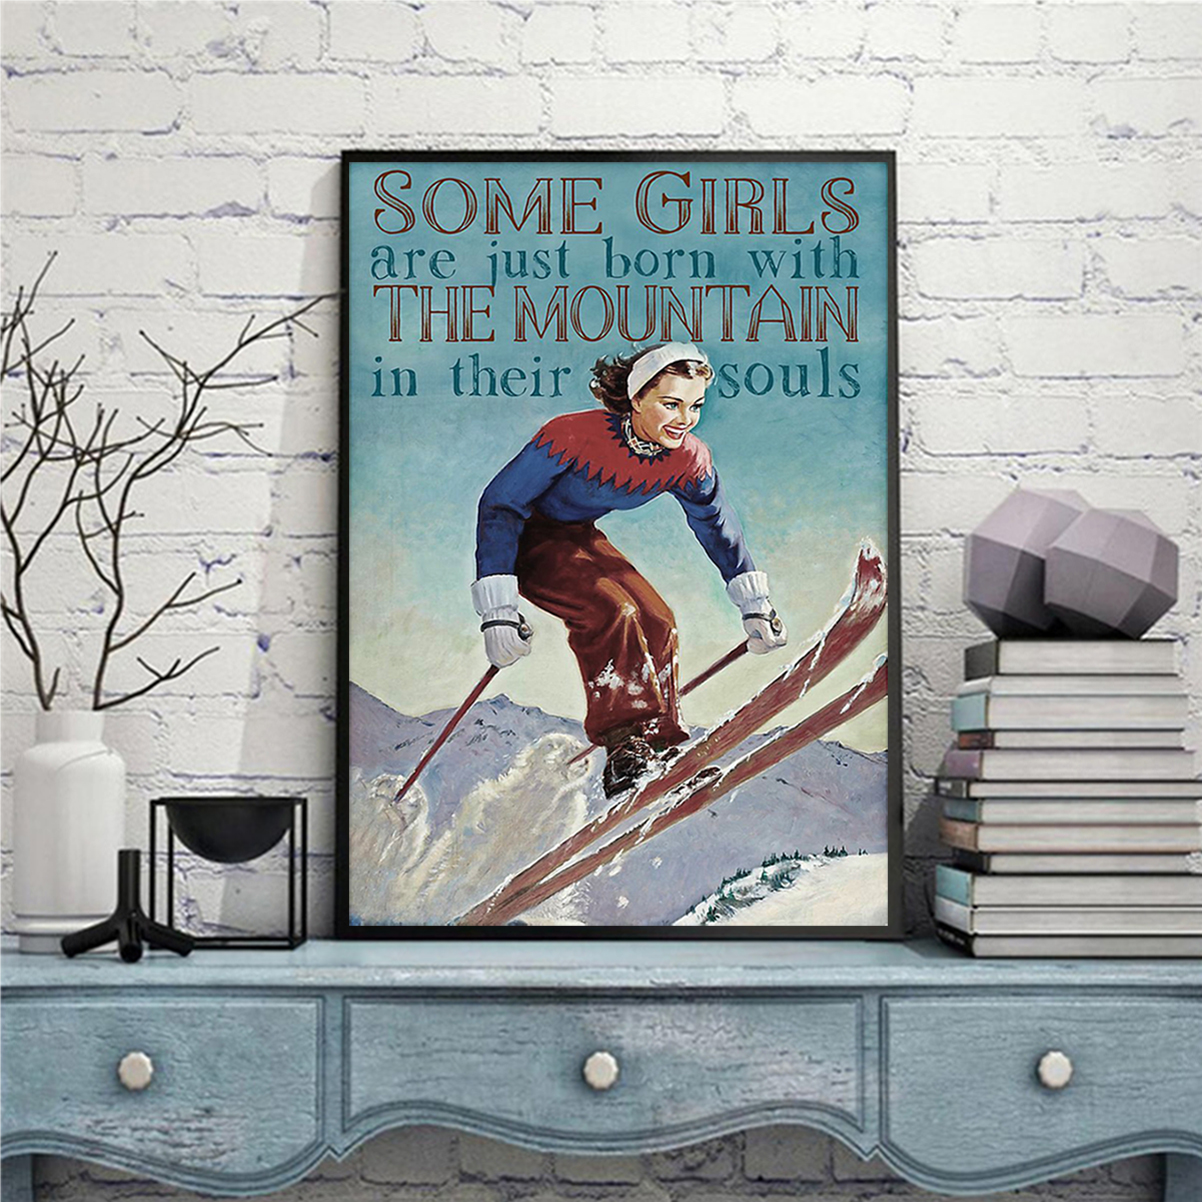 Skiing some girls are just born with the moutain in their souls poster A2